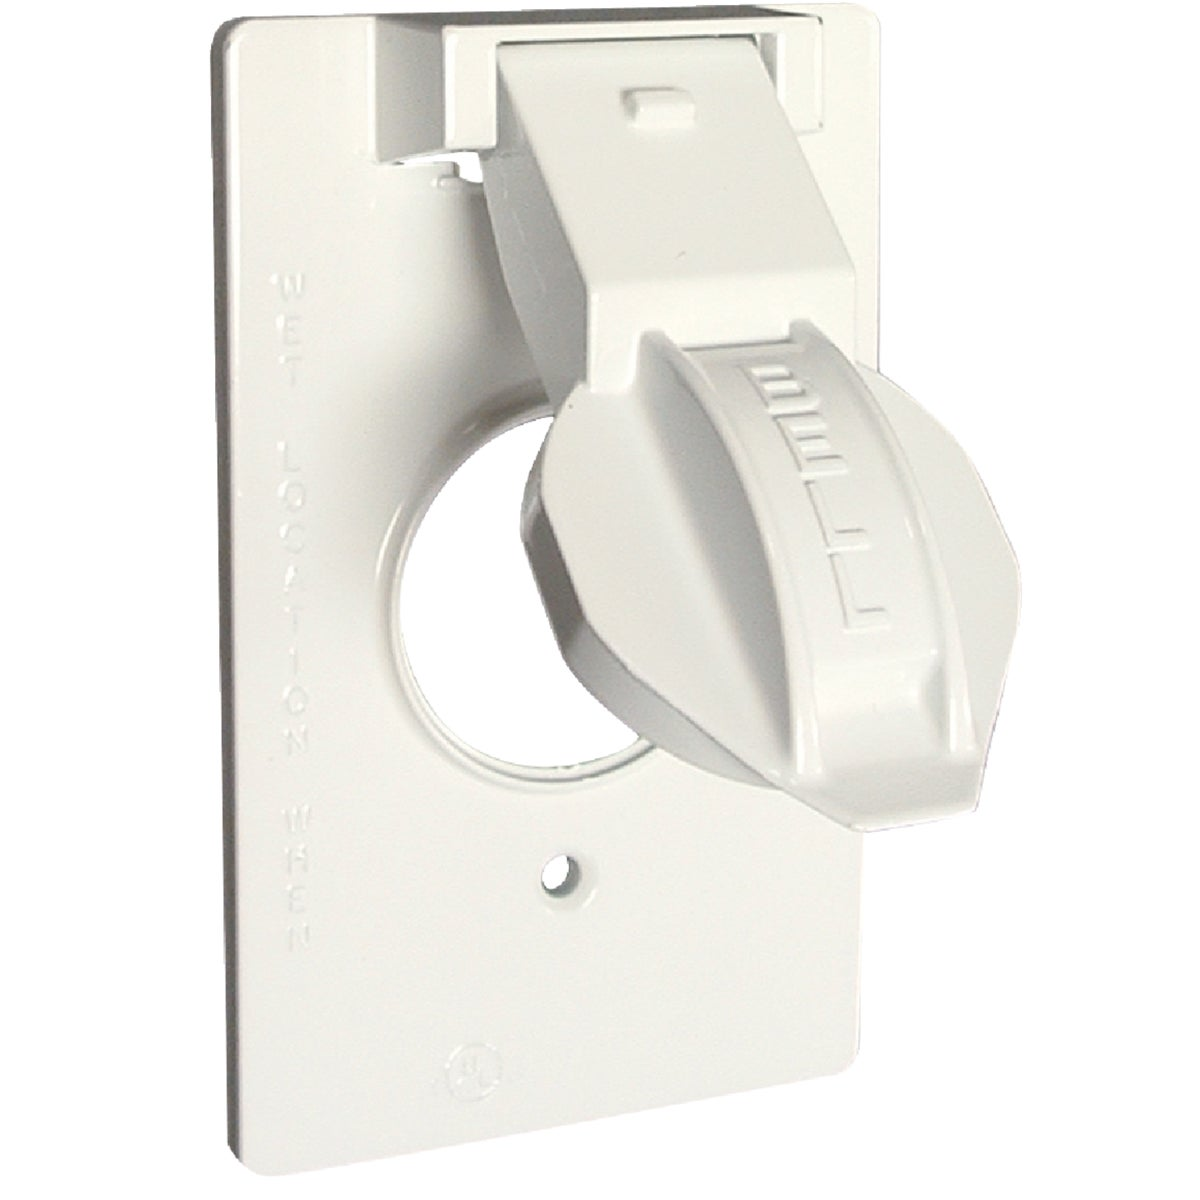 WHT RND WP OUTLET COVER - 5155-6 by Hubbell